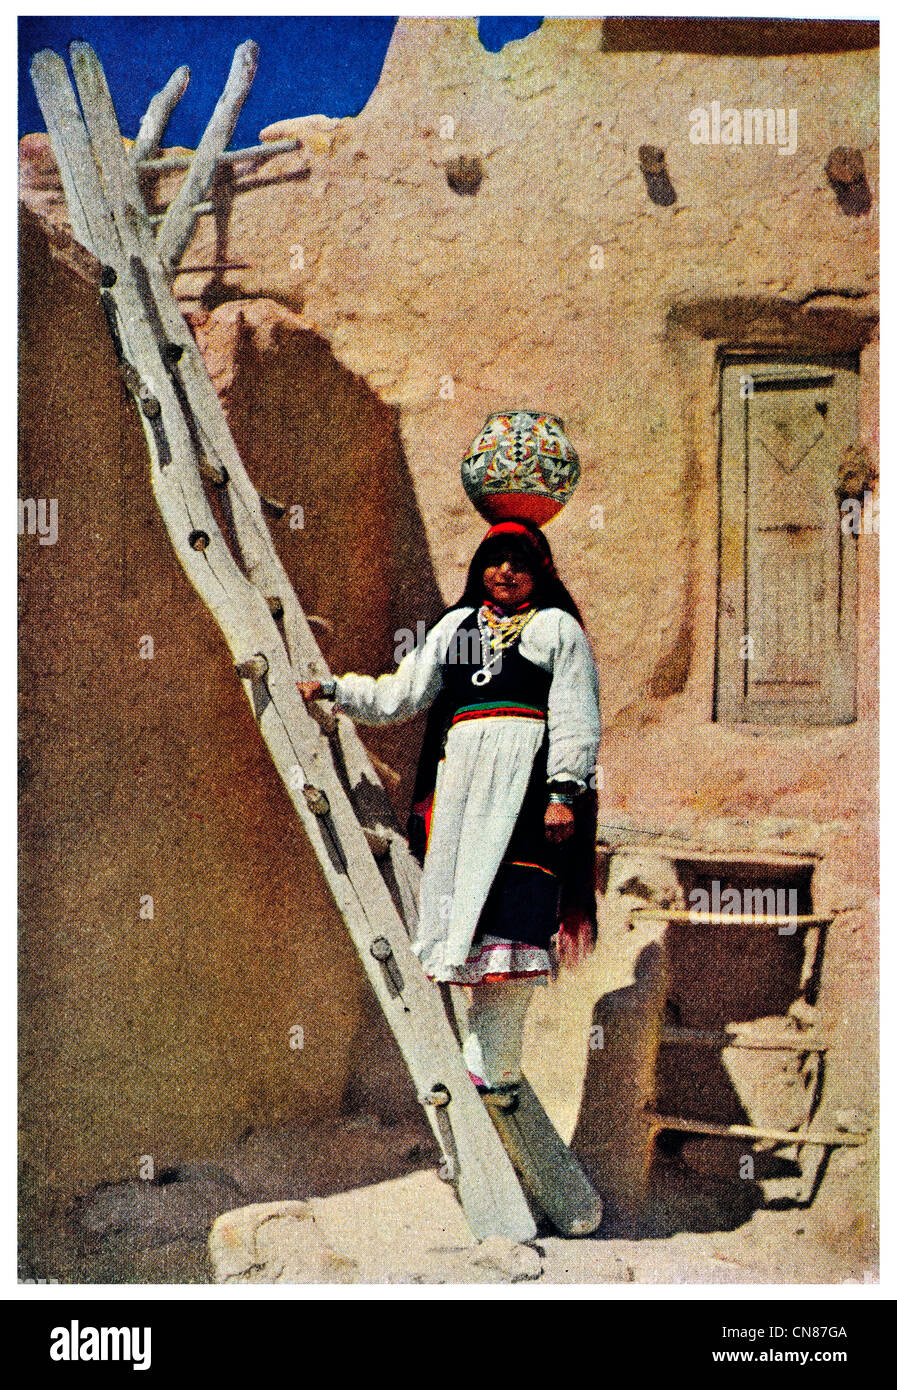 First published 1916 Water carrier of Acoma New Mexico mud brick house ladder wooden wood - Stock Image